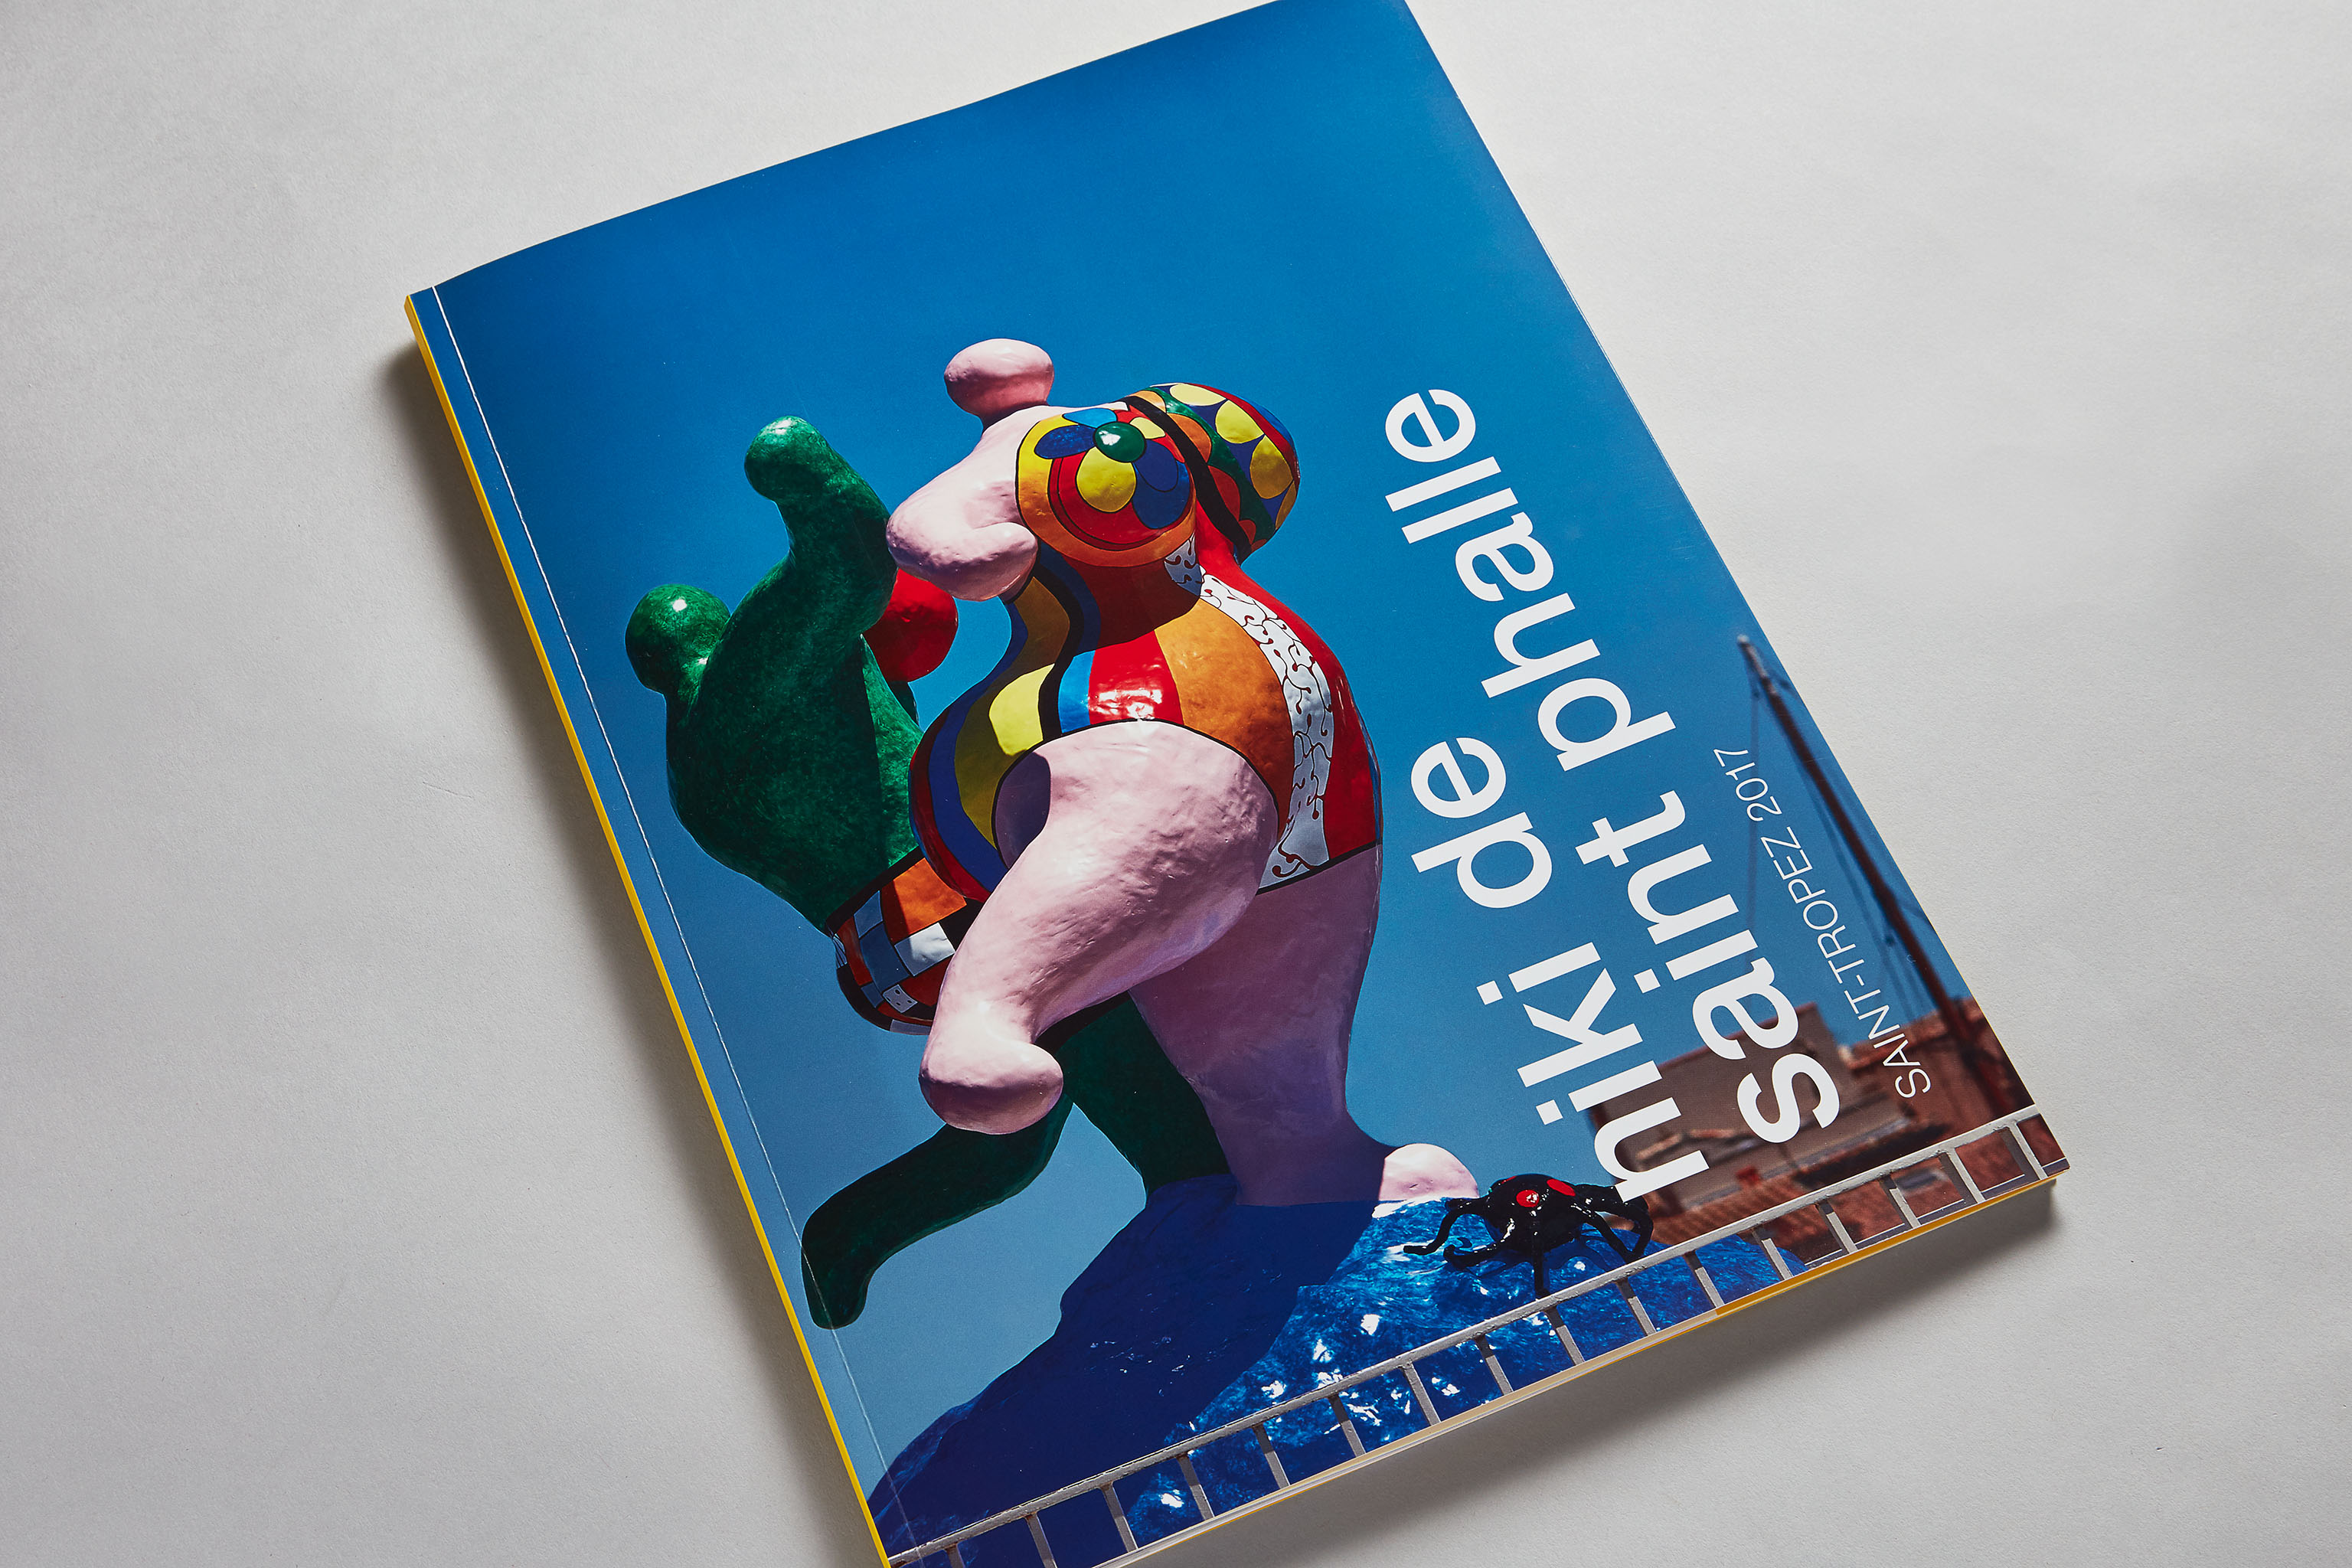 GALERIE MITTERRAND Catalogue Niki de Saint Phalle. Exposition Saint-Tropez. Art contemporain